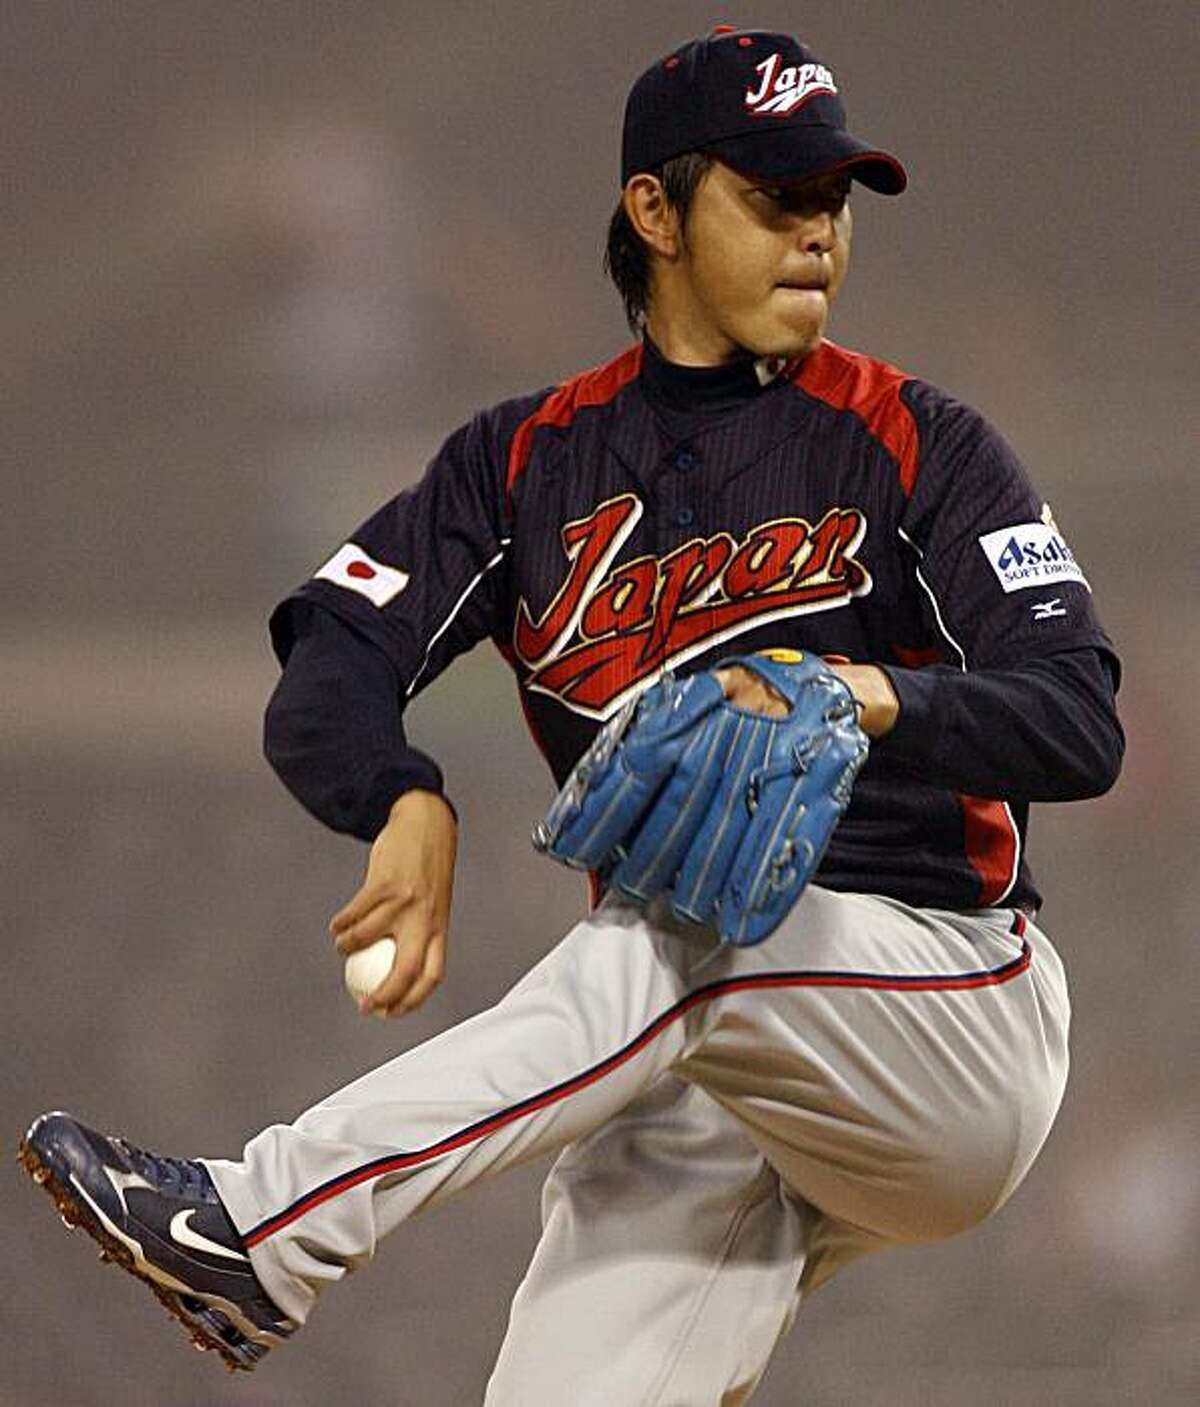 Japan starter Hisashi Iwakuma winds up to deliver a pitch during the sixth inning against Cuba during their World Baseball Classic game in San Diego Wednesday, March 18, 2009. (AP Photo/Denis Poroy)